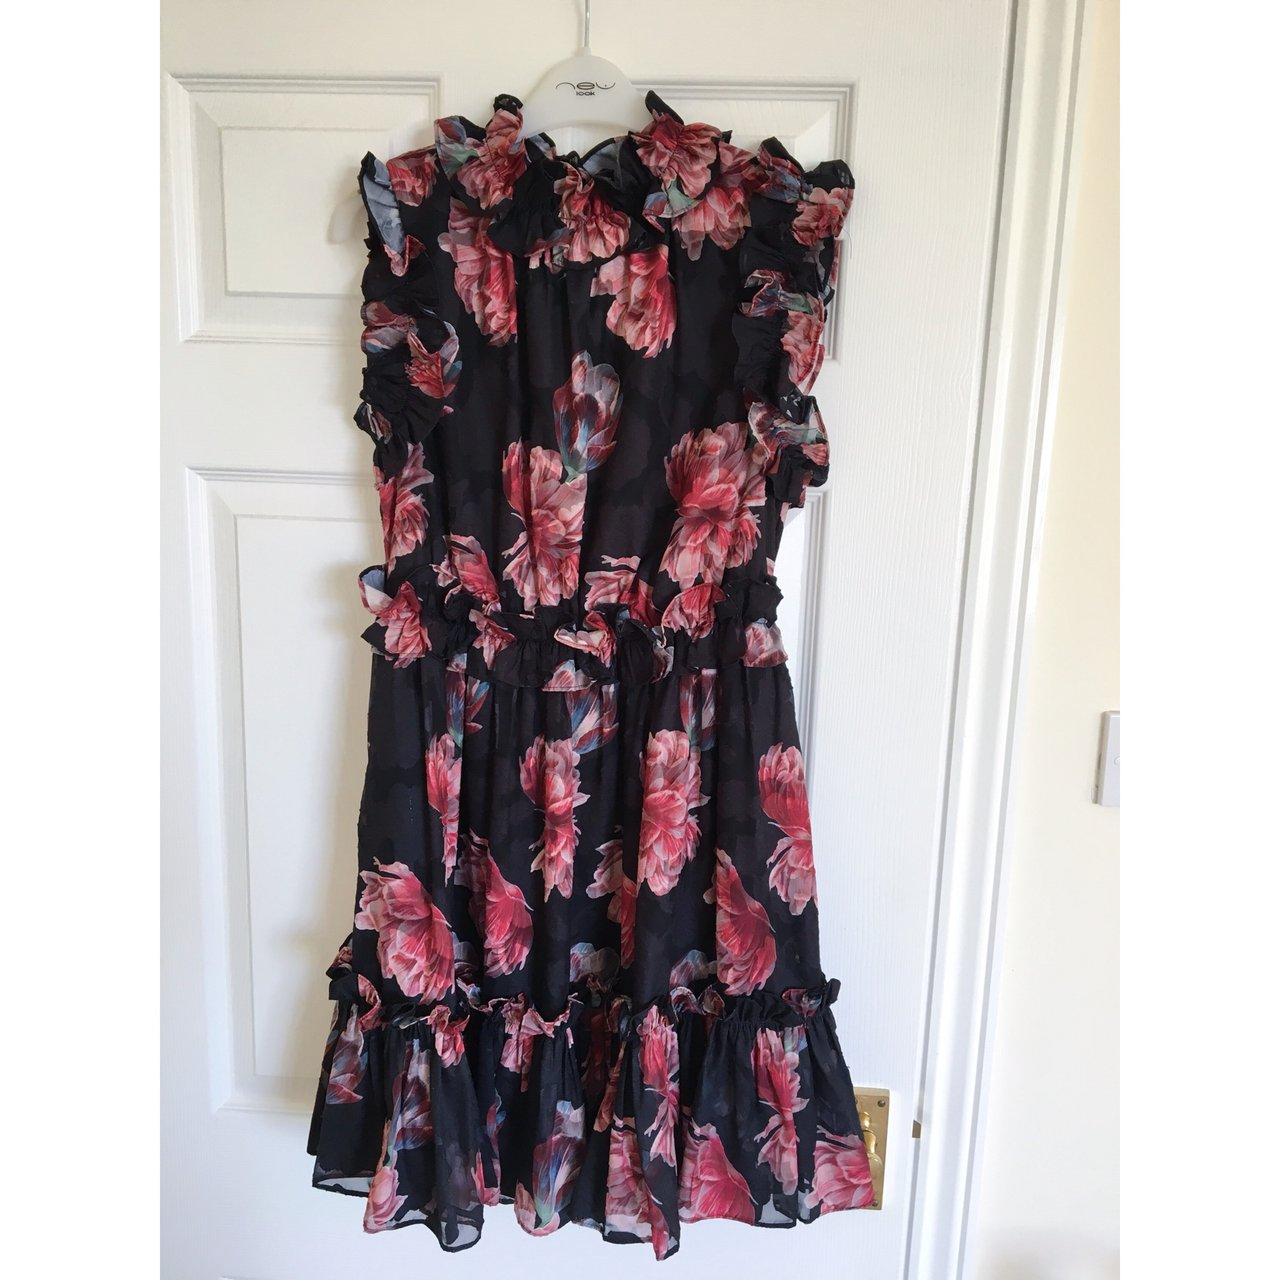 ff023e6aeb Genuine Ted Baker AW18 'FALLONN' tranquility ruffle dress in - Depop